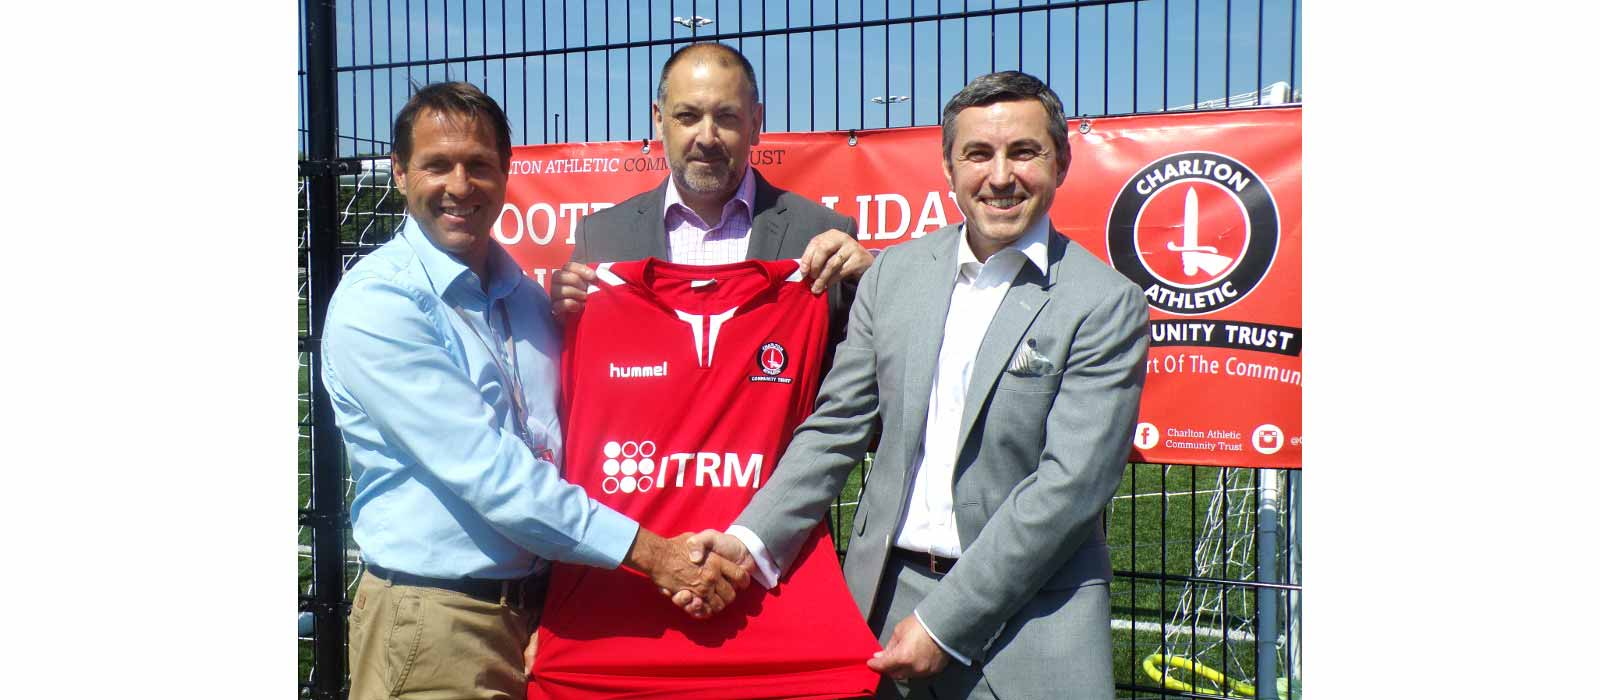 ITRM are the Back-of-Shirt Sponsor on Charlton Athletic's New Kit